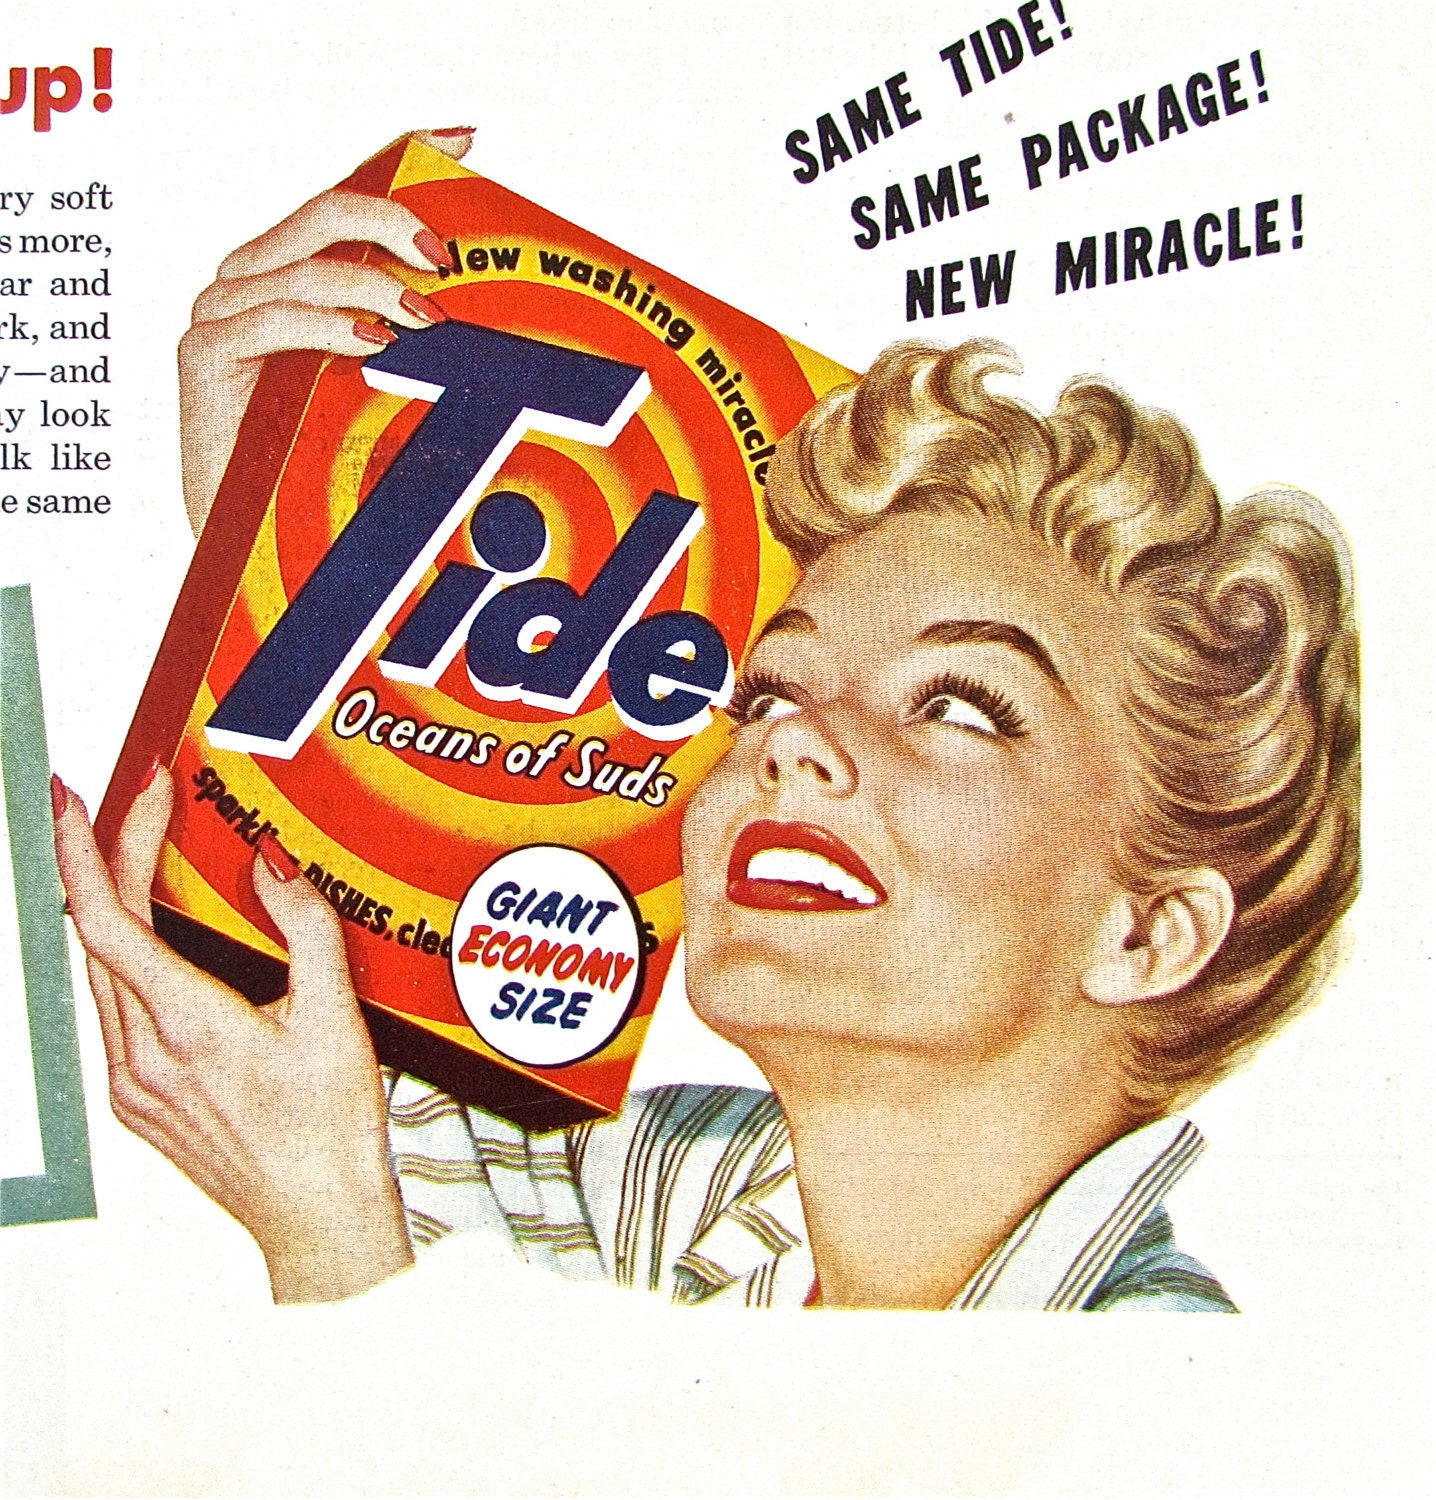 1950s Vintage Laundry Ad Tide Detergent moreover Vintage Ads furthermore Napa Auto Parts Logo additionally Ethos Pathos Logos Advertisements in addition  on advers from the 1950s